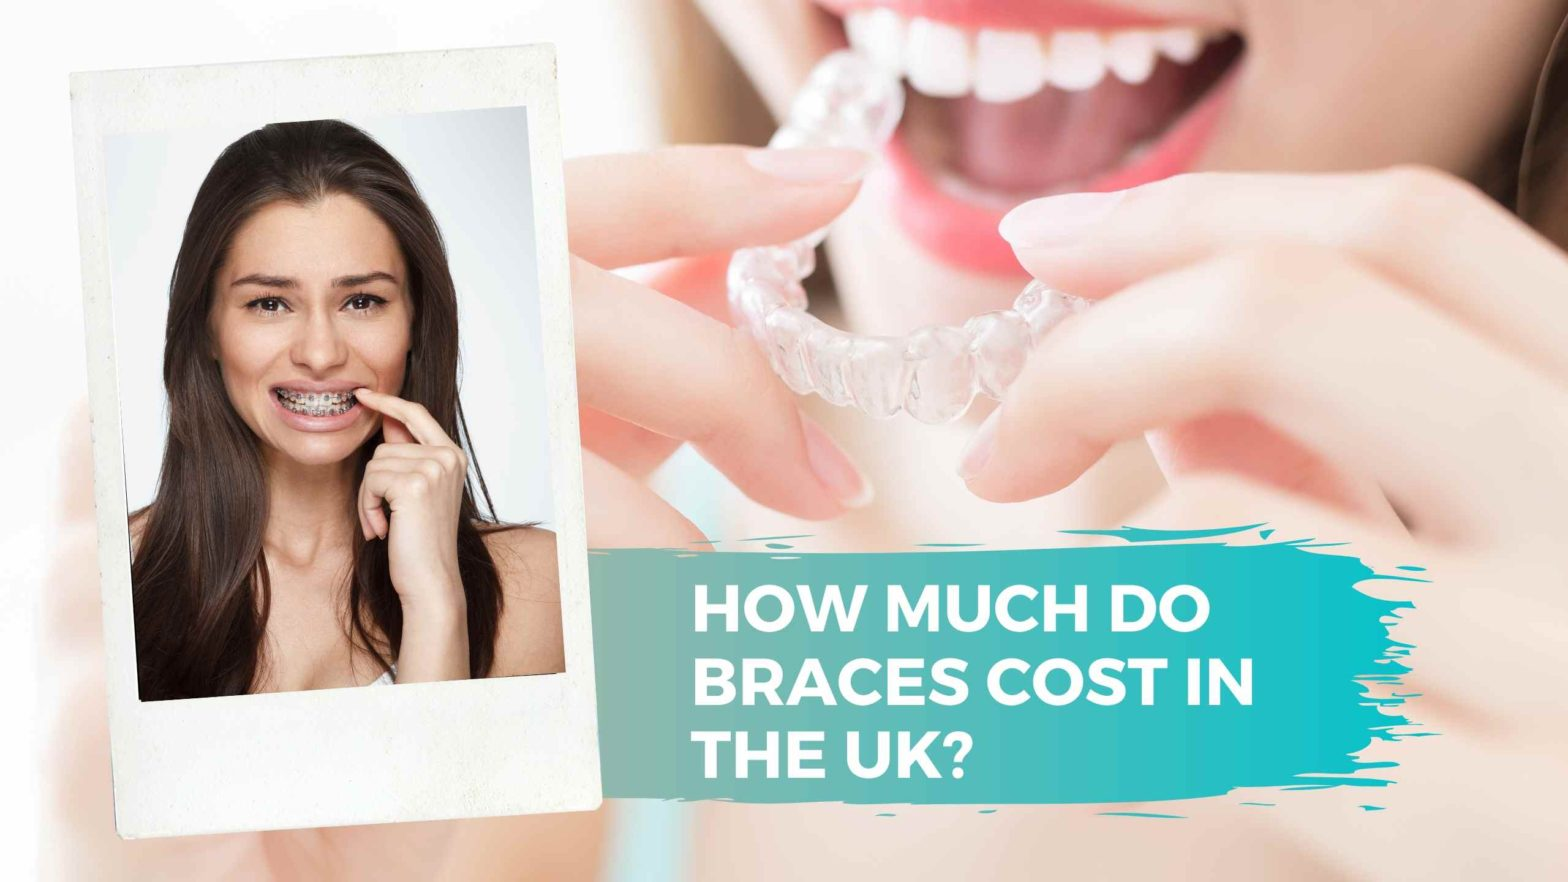 How Much Do Braces Cost In The UK